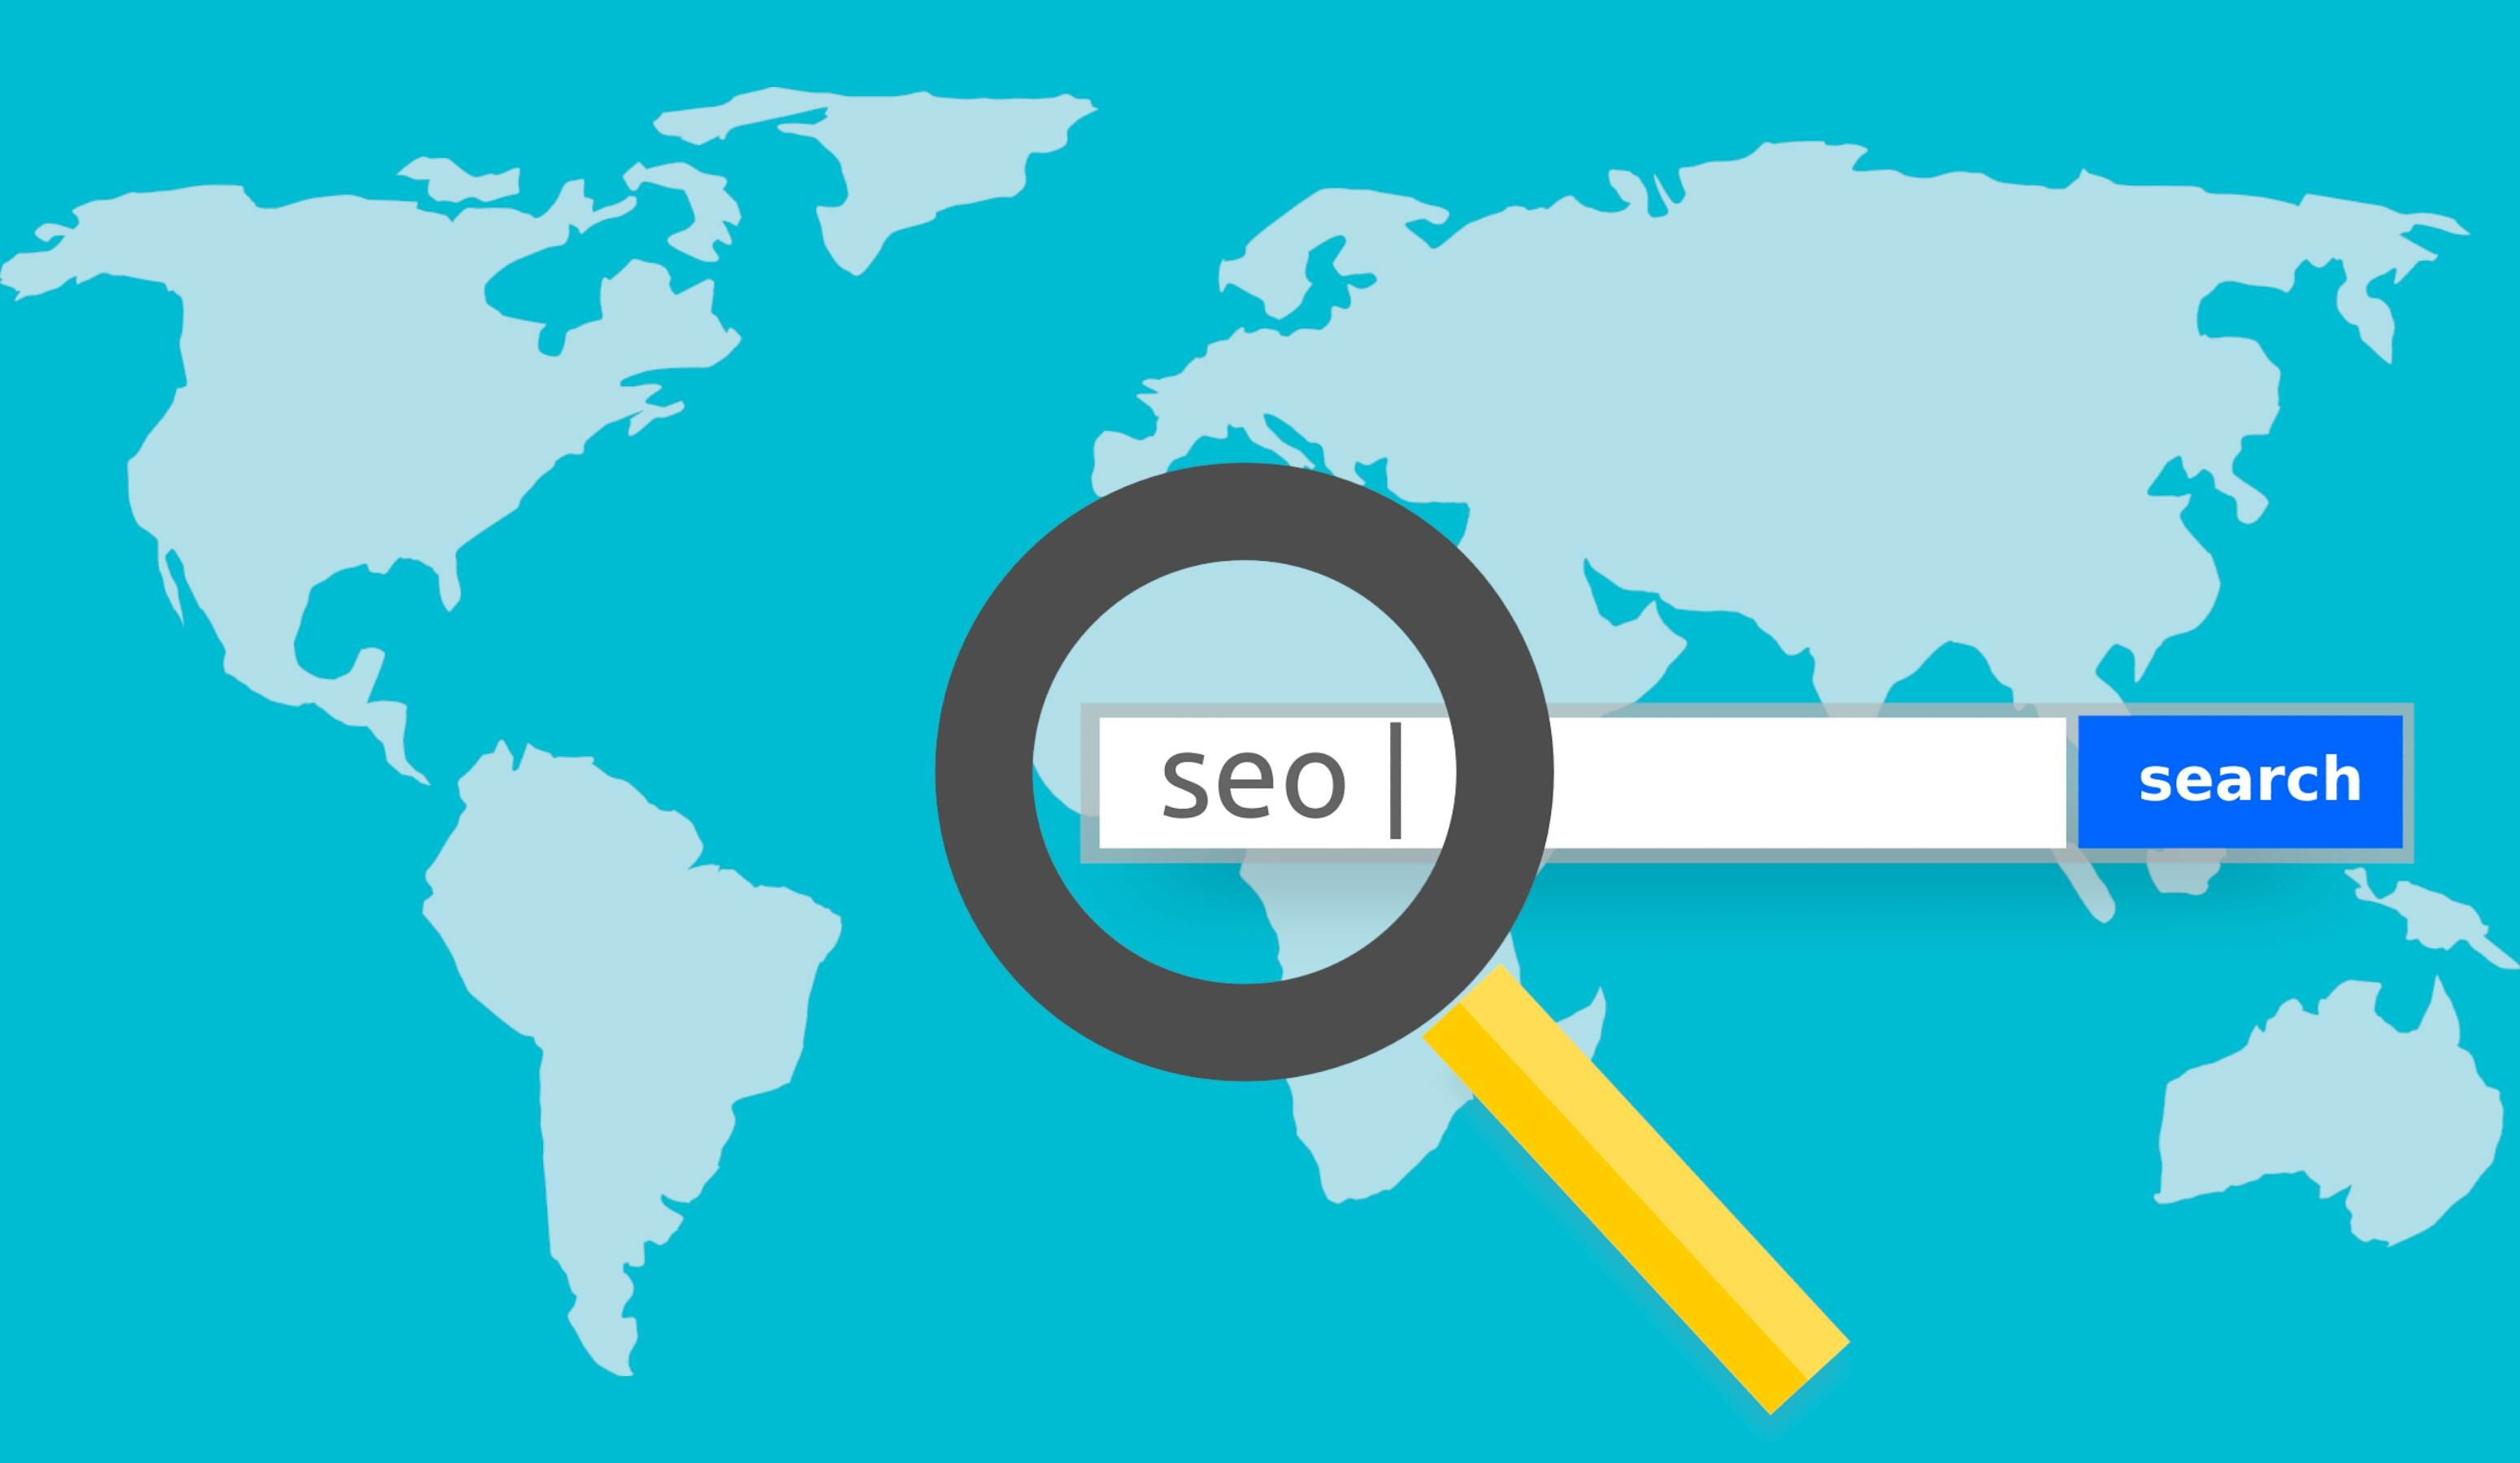 How to Rank Your Website with the Best SEO Practices?